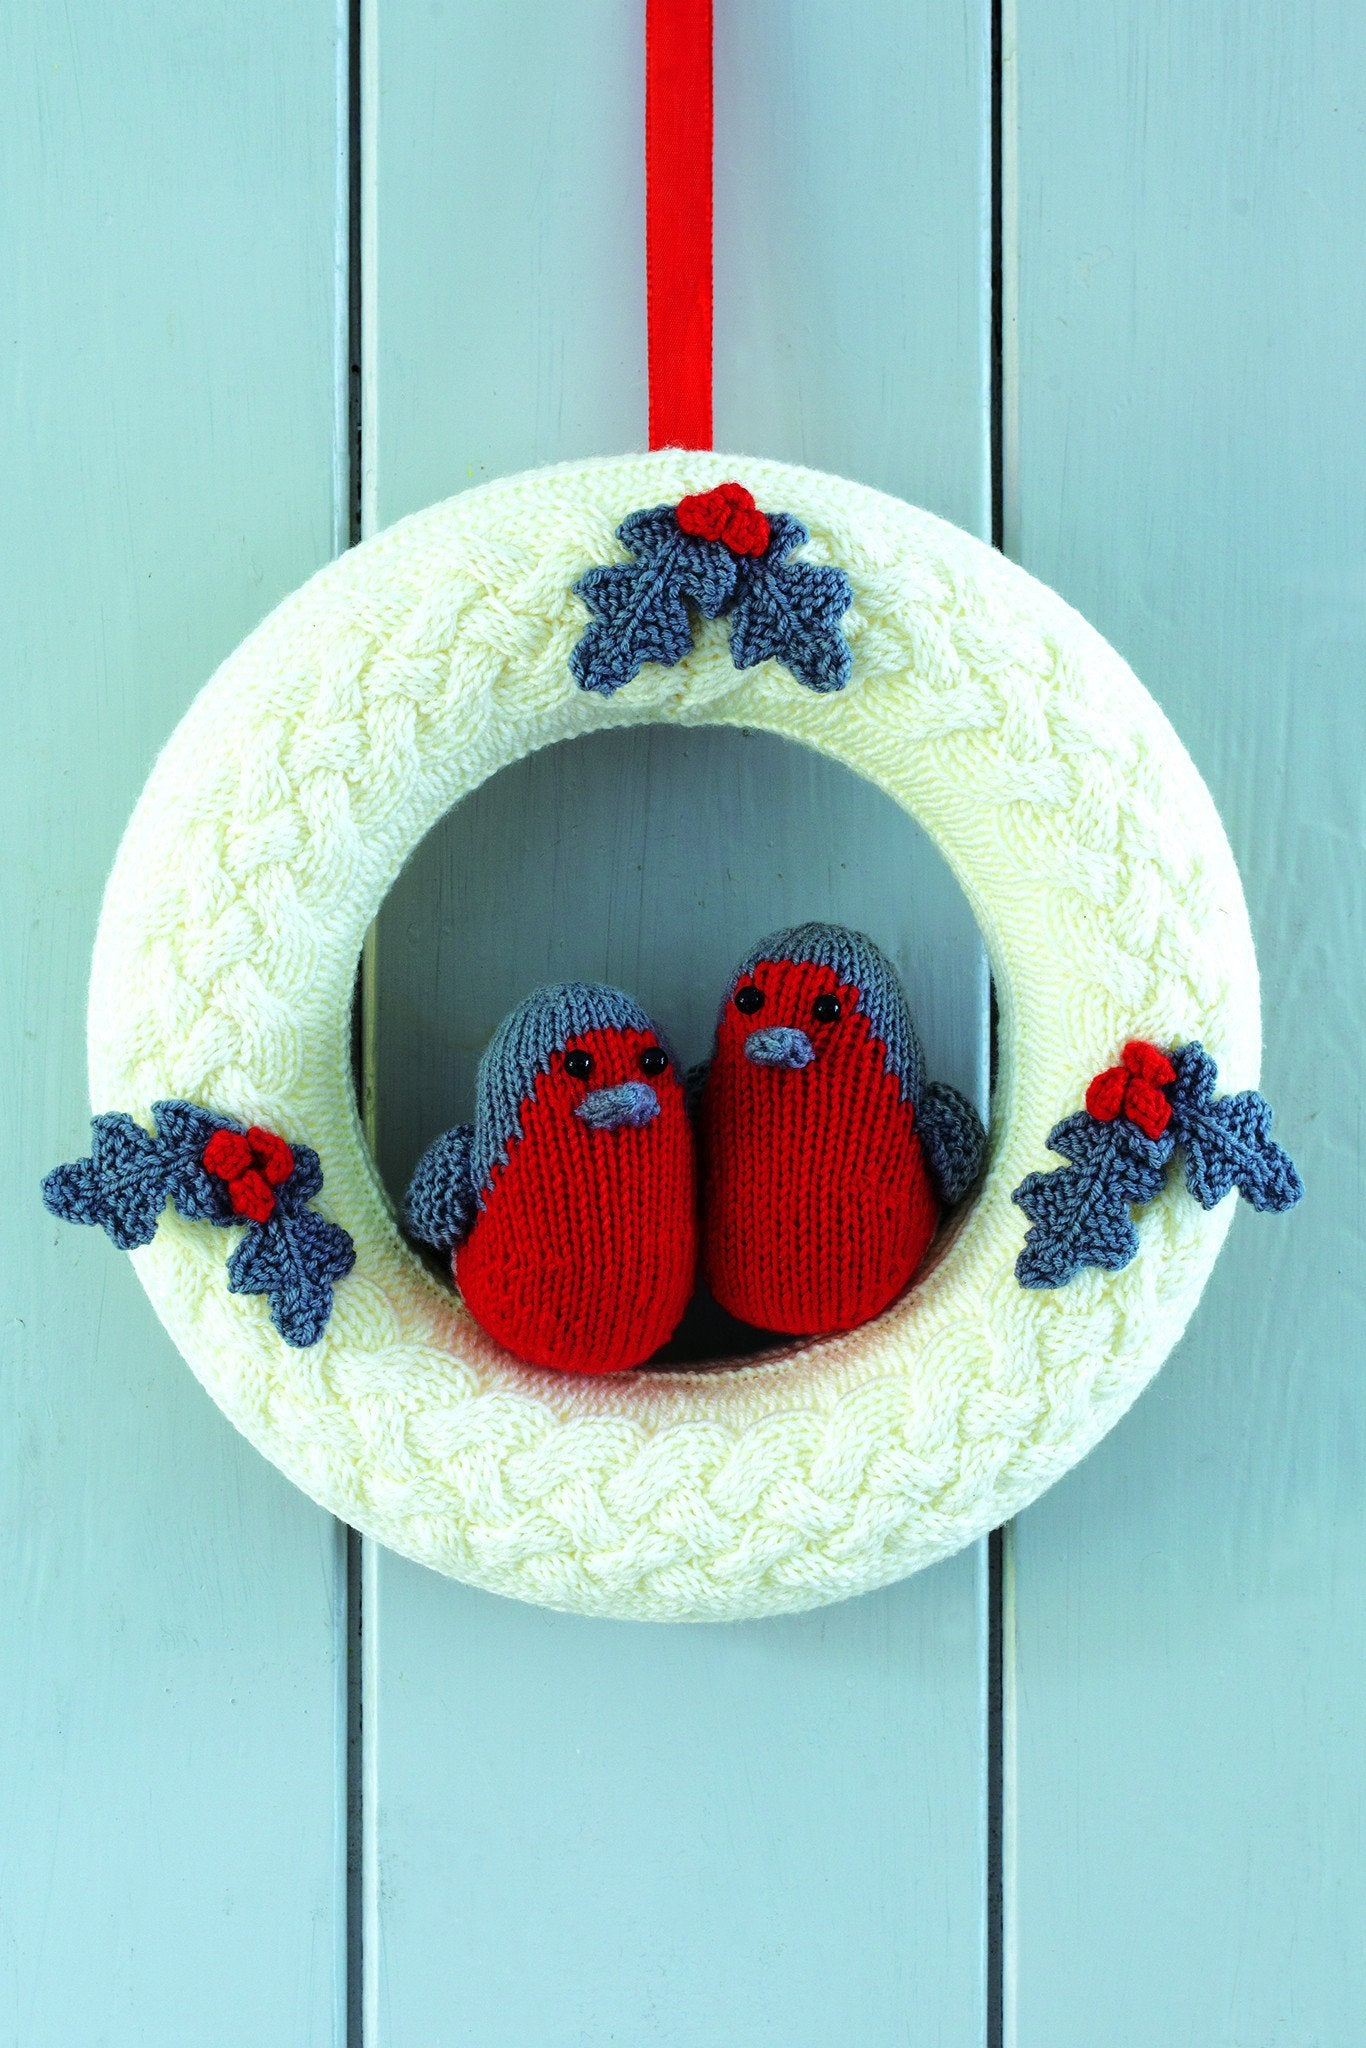 Robin Christmas Wreath Knitting Pattern – The Knitting Network